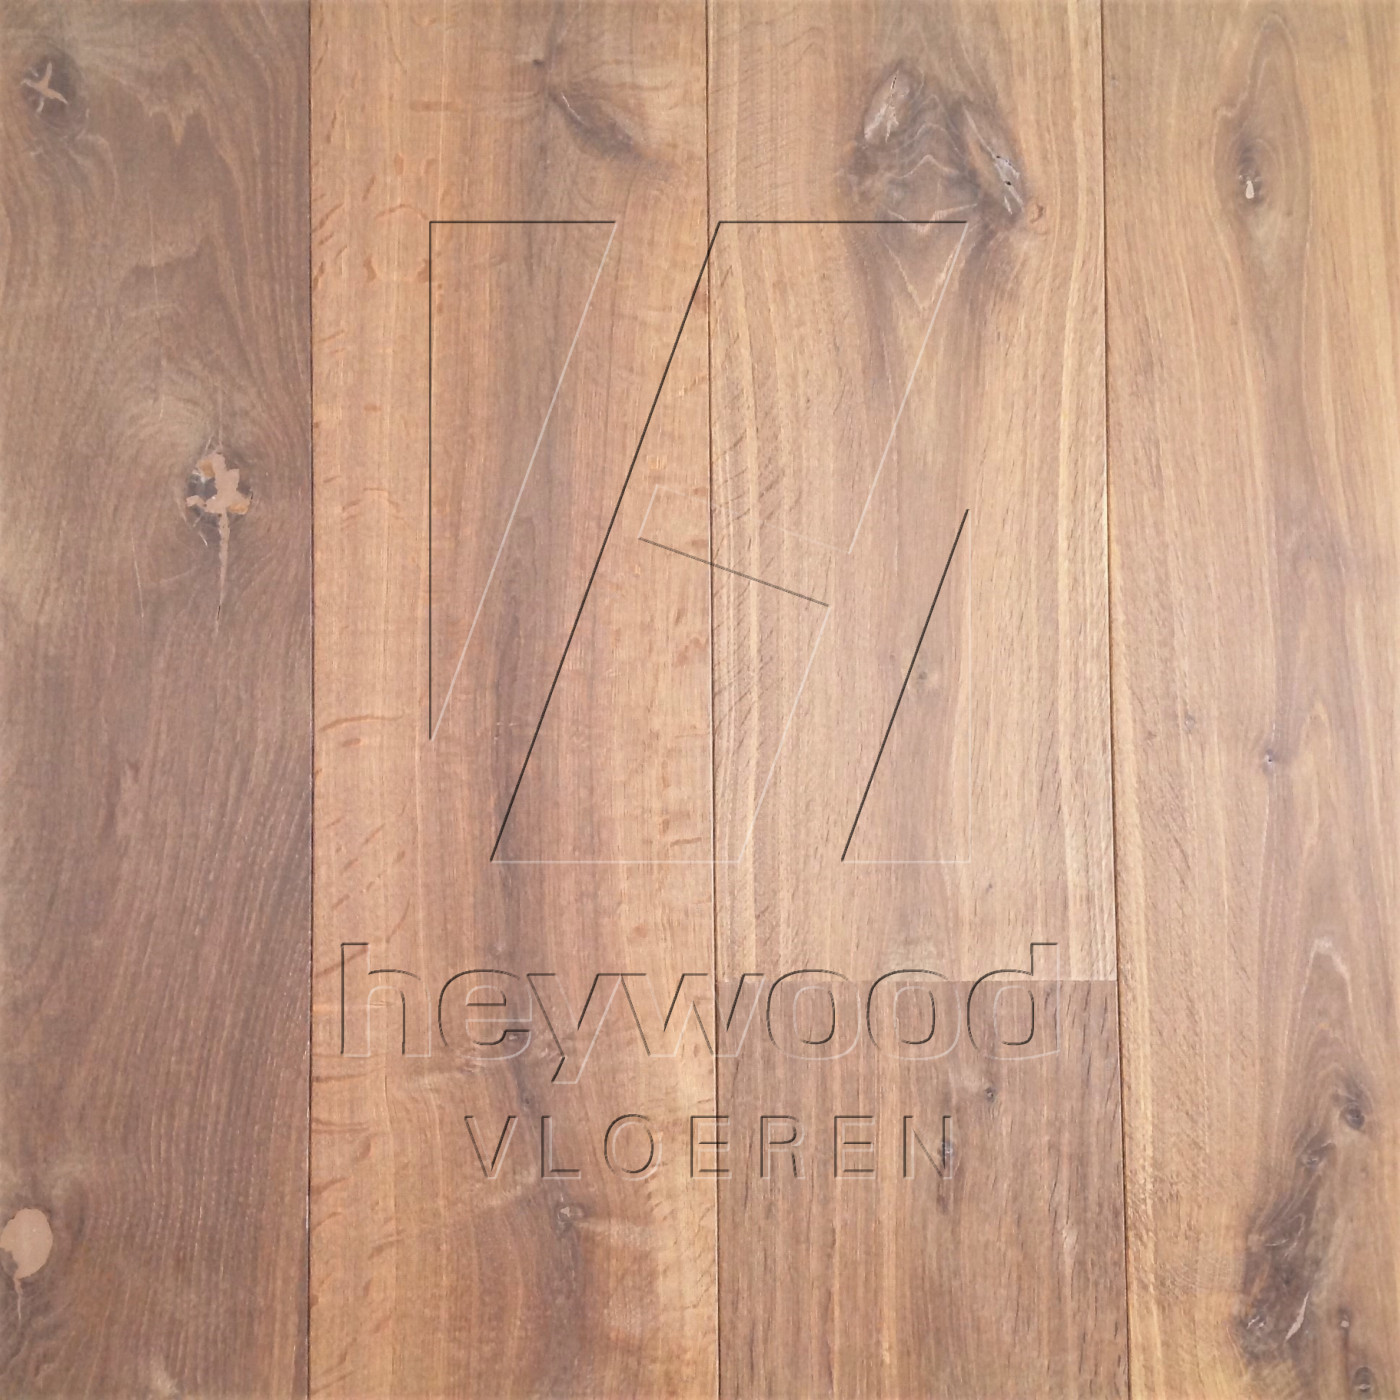 Plank Nanga Parbat coloured in European Oak Character of Bespoke Wooden Floors